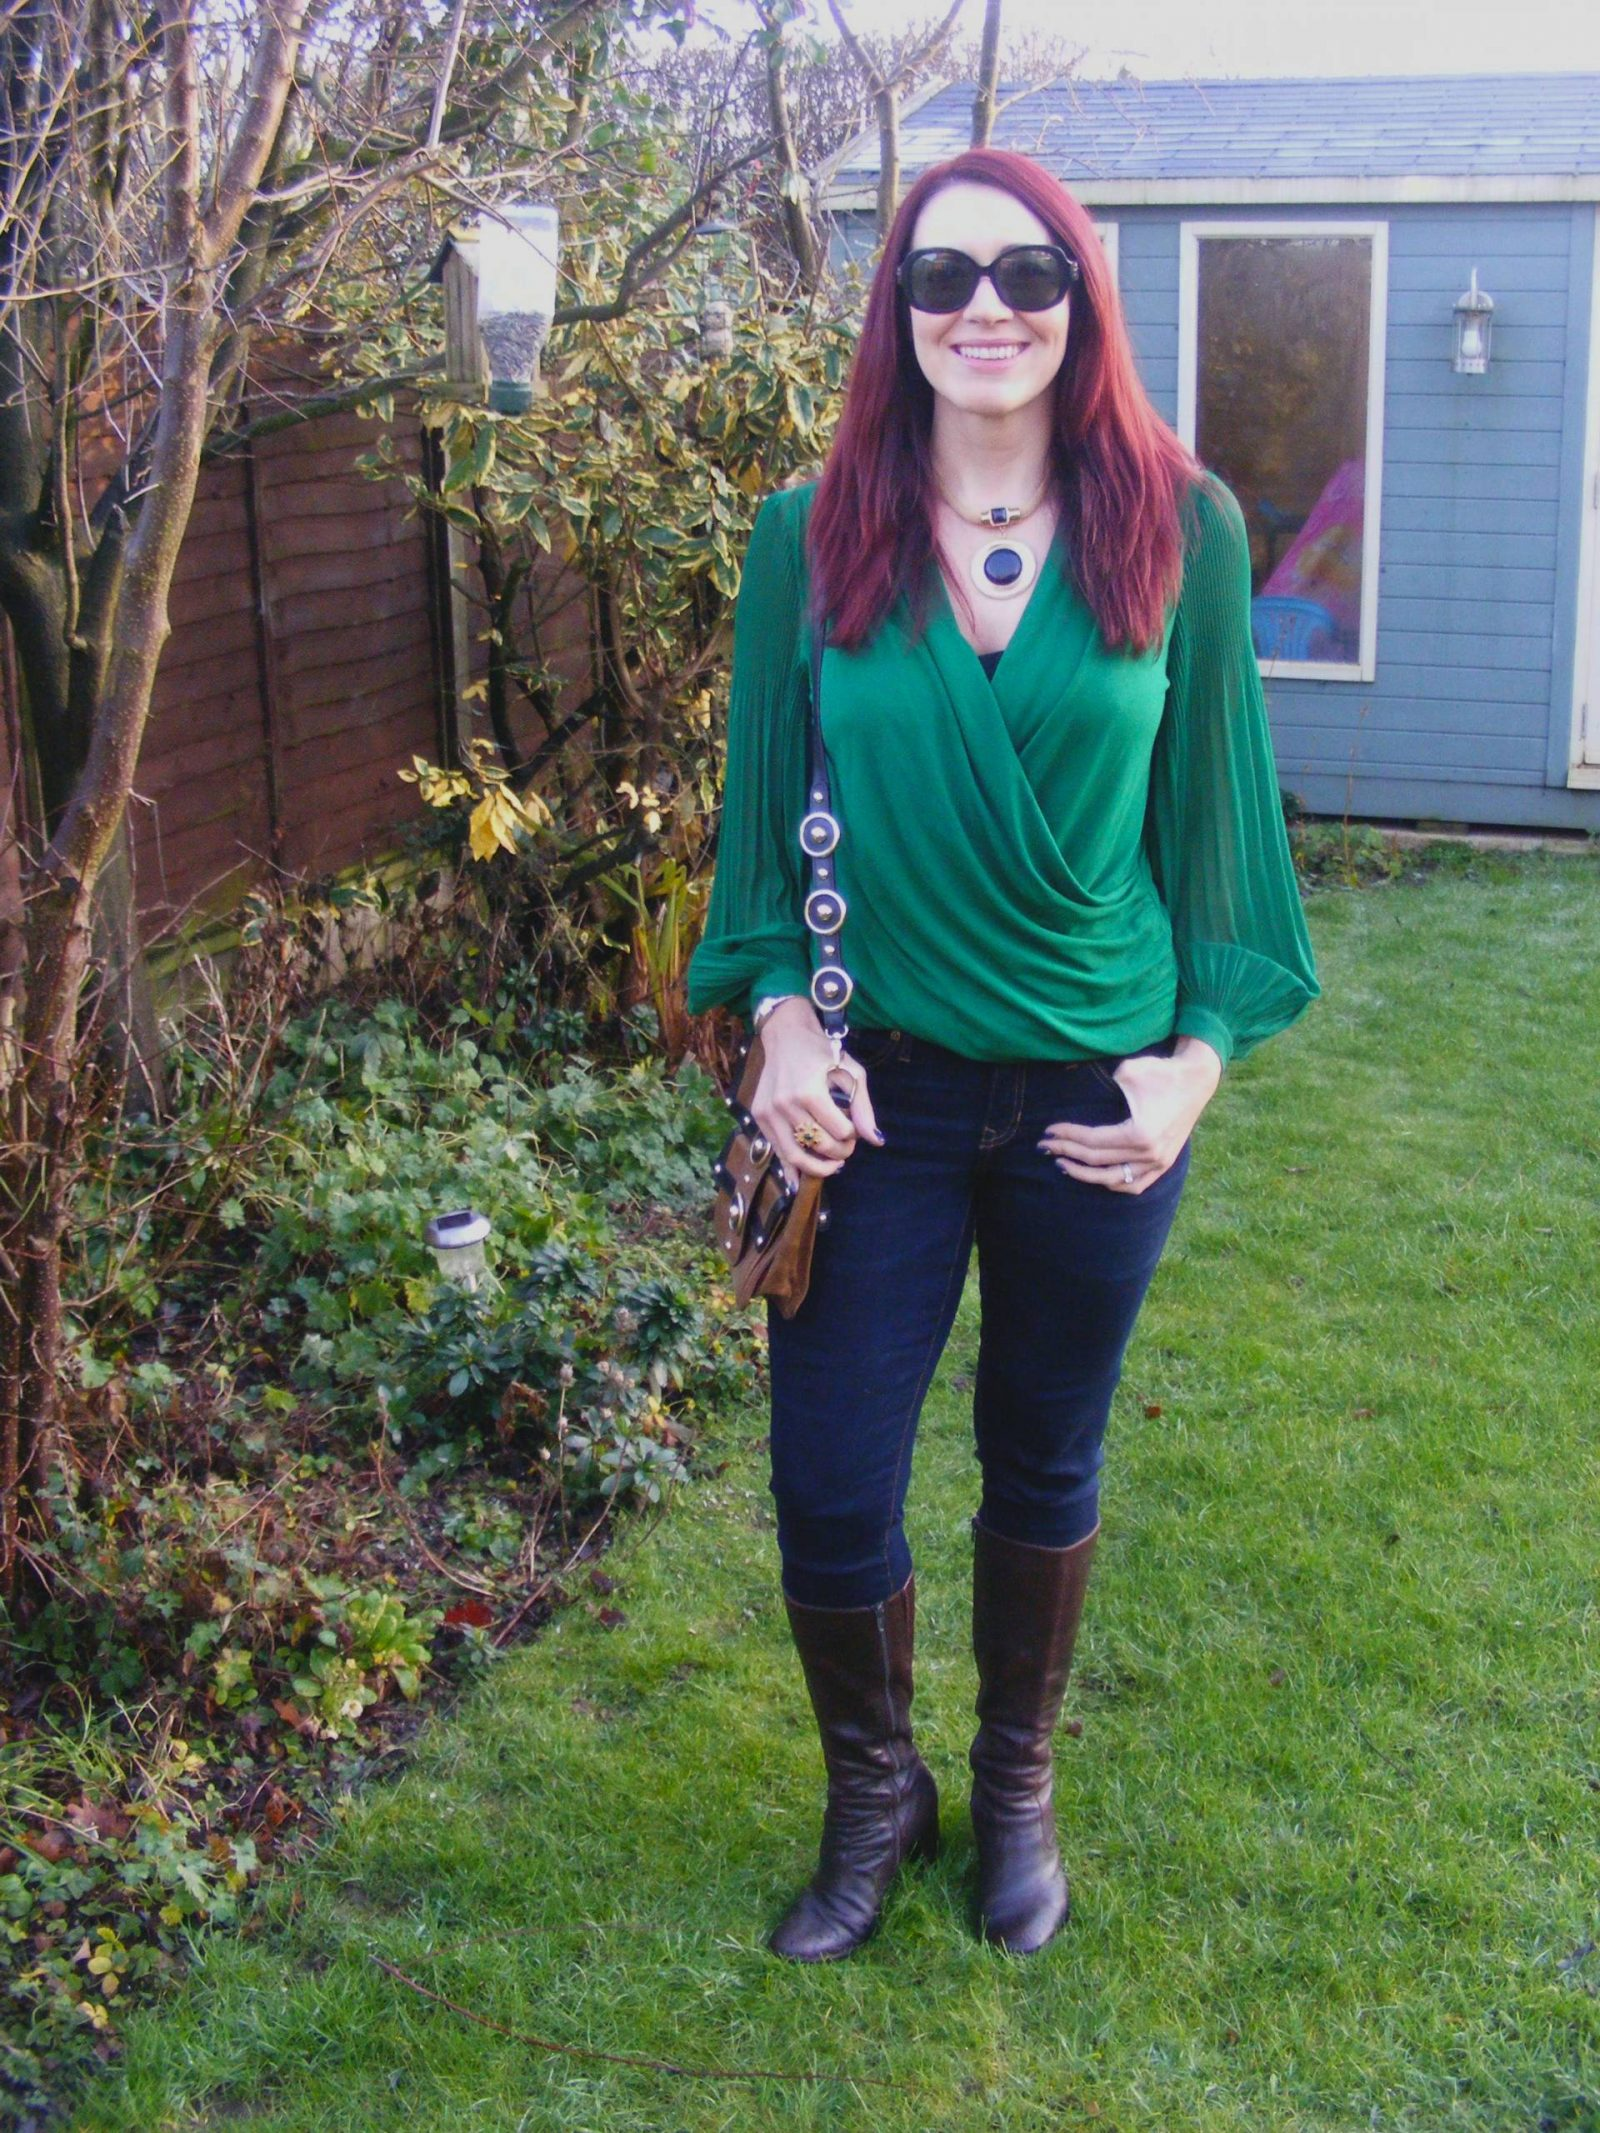 Green Jasper Conran Top and Temperley London Messenger Bag